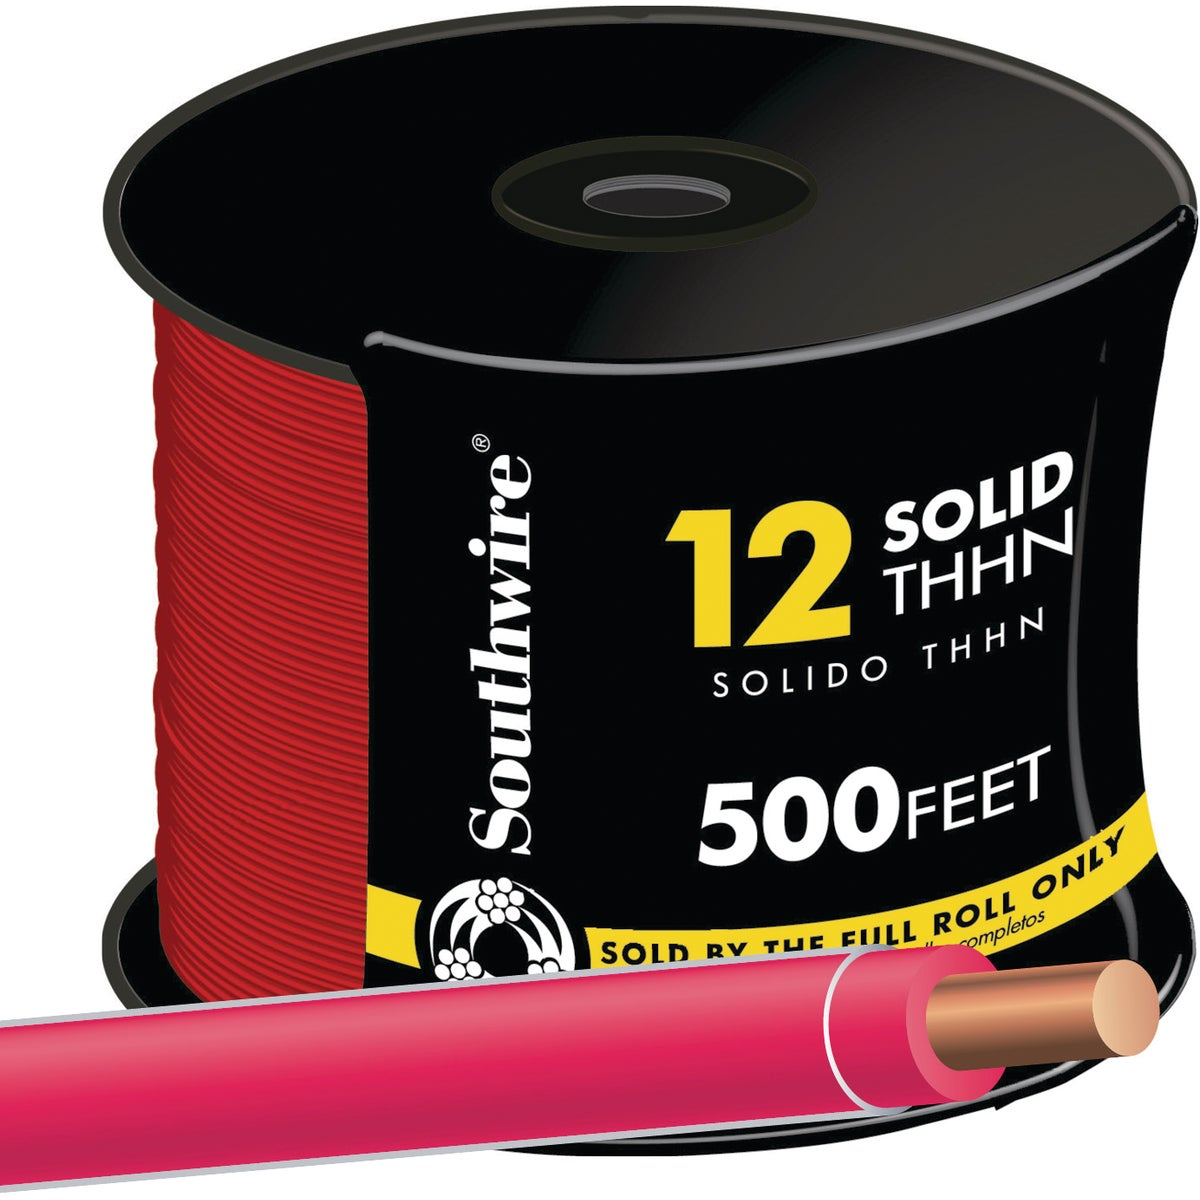 Southwire 500' 12SOL RED THHN WIRE 11589957